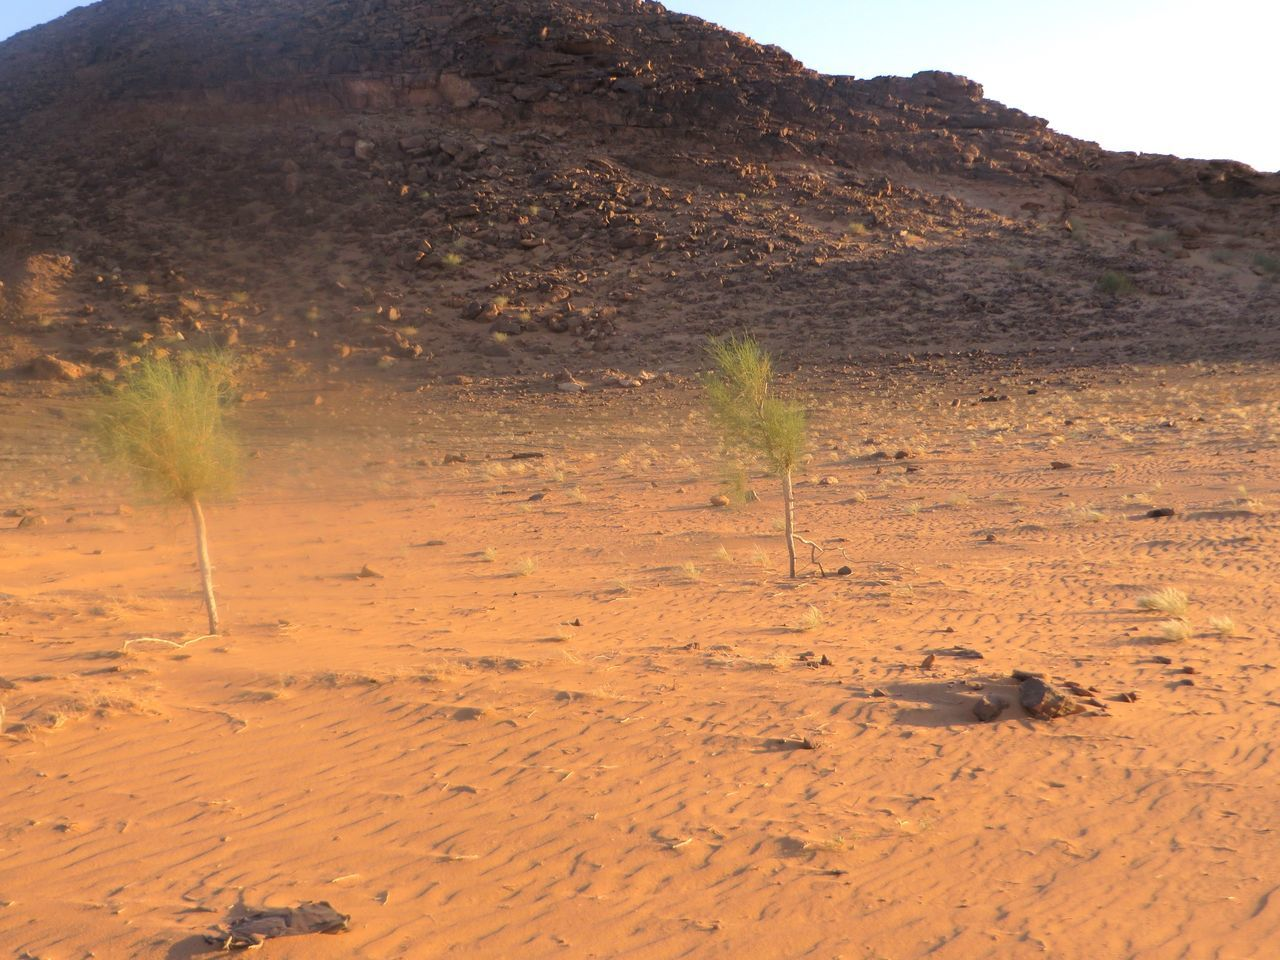 nature, no people, plant, landscape, day, outdoors, sand, mountain, beauty in nature